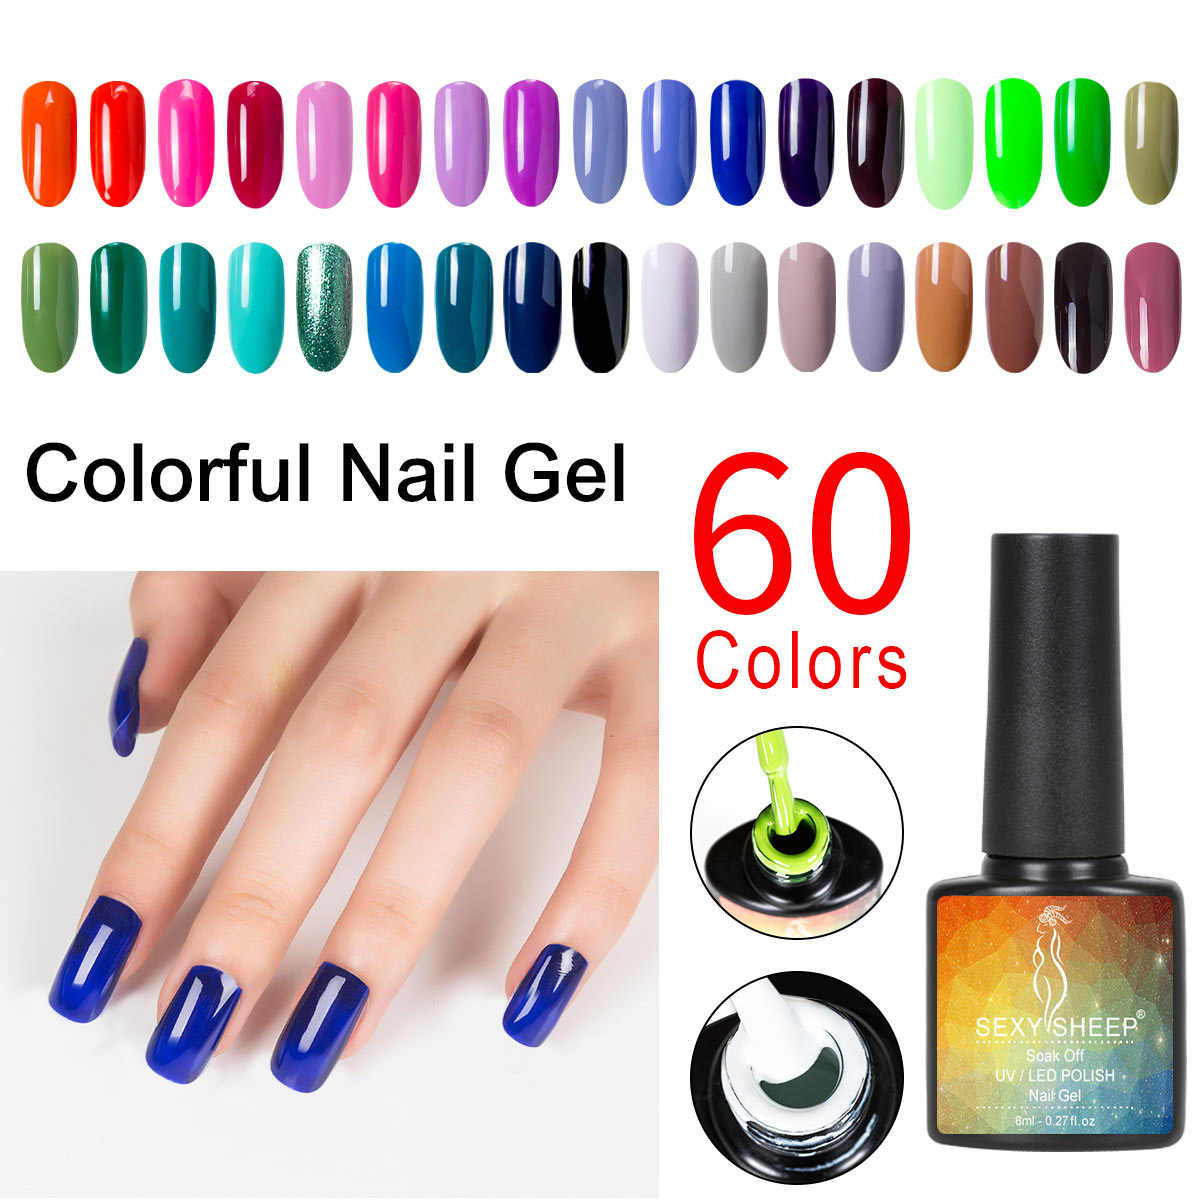 8ML Gel Nail Polish UV LED Nail Varnish For Manicure 60 Colors Gel Lacquer Semi Permanent Gel Paint Nail Art DIY Design Tools